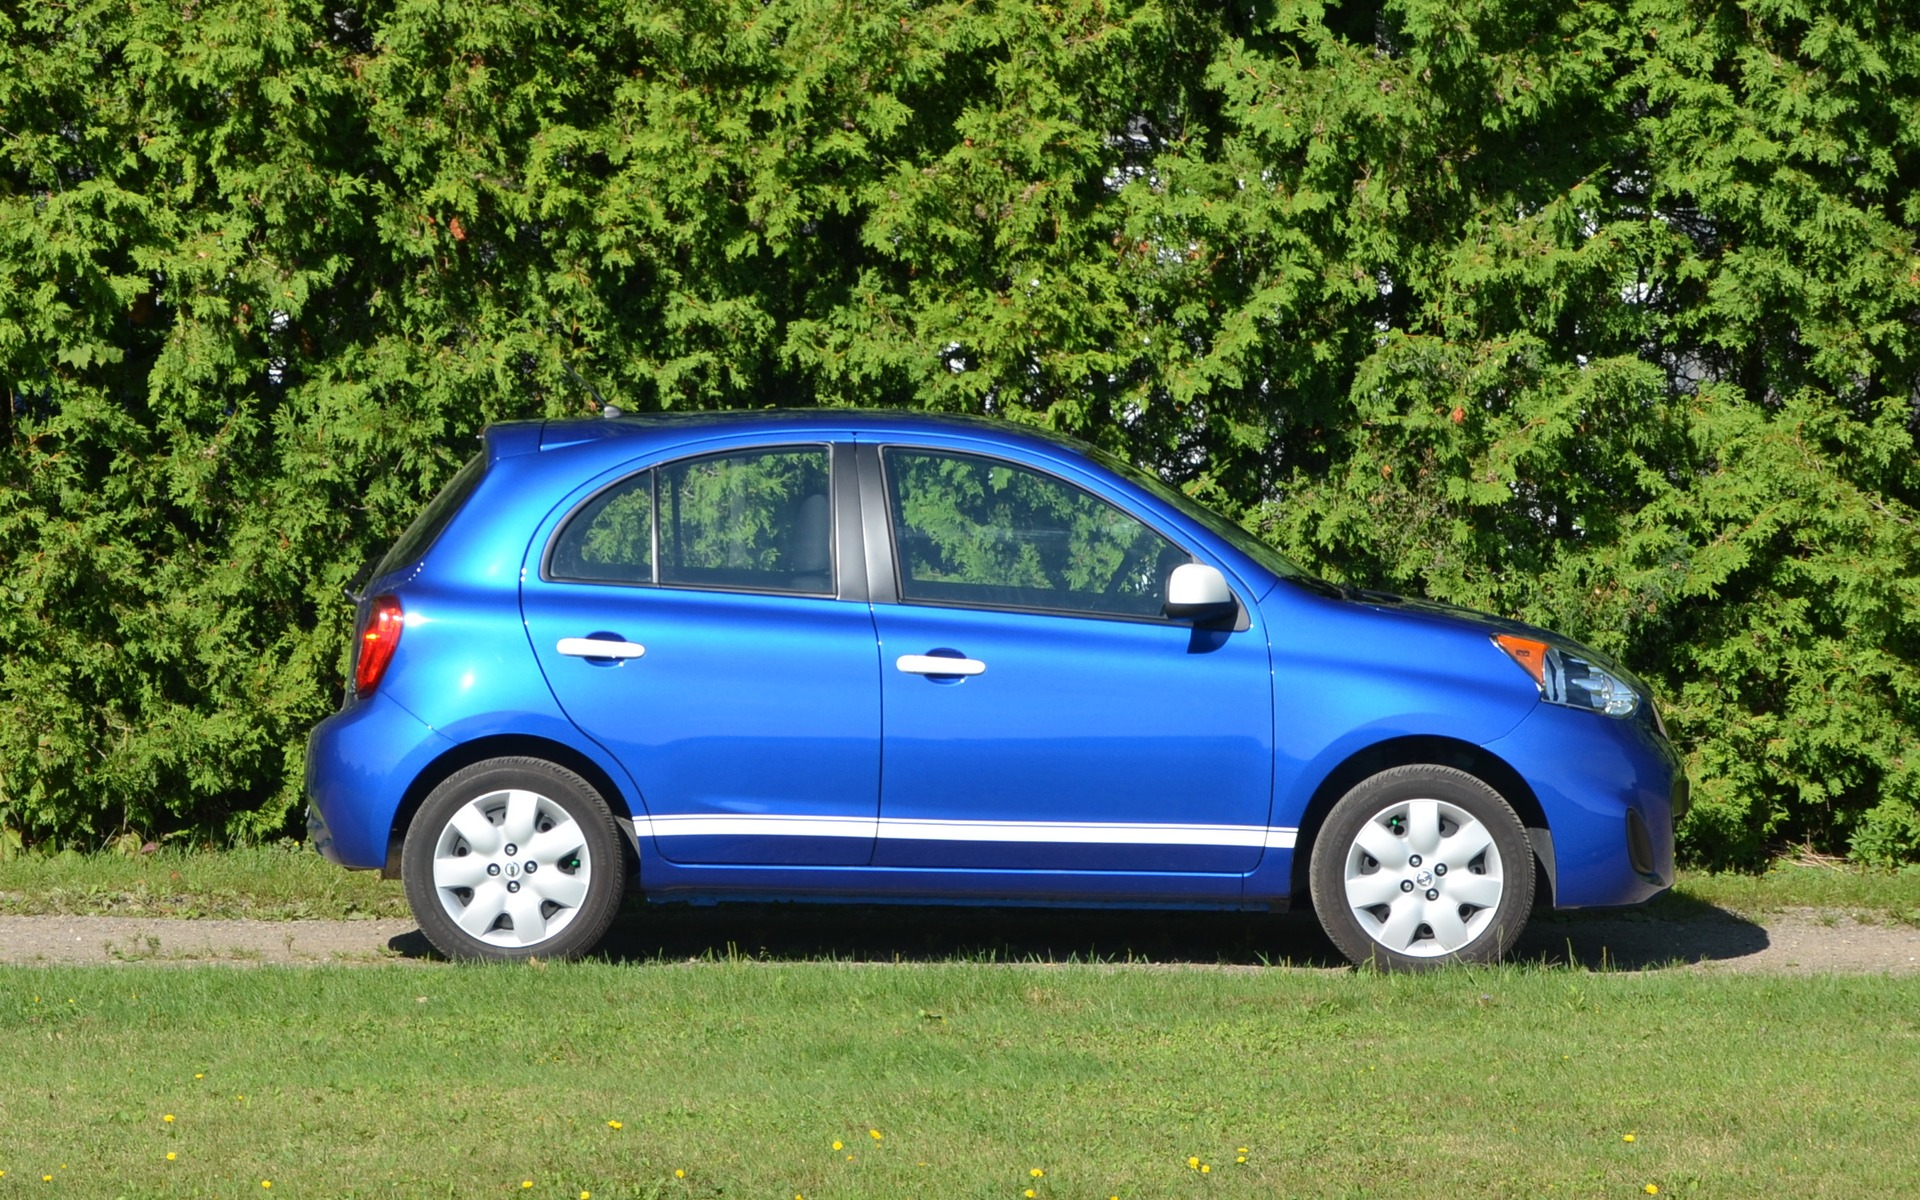 2015 Nissan Micra Small Car For A Small Price 18 25